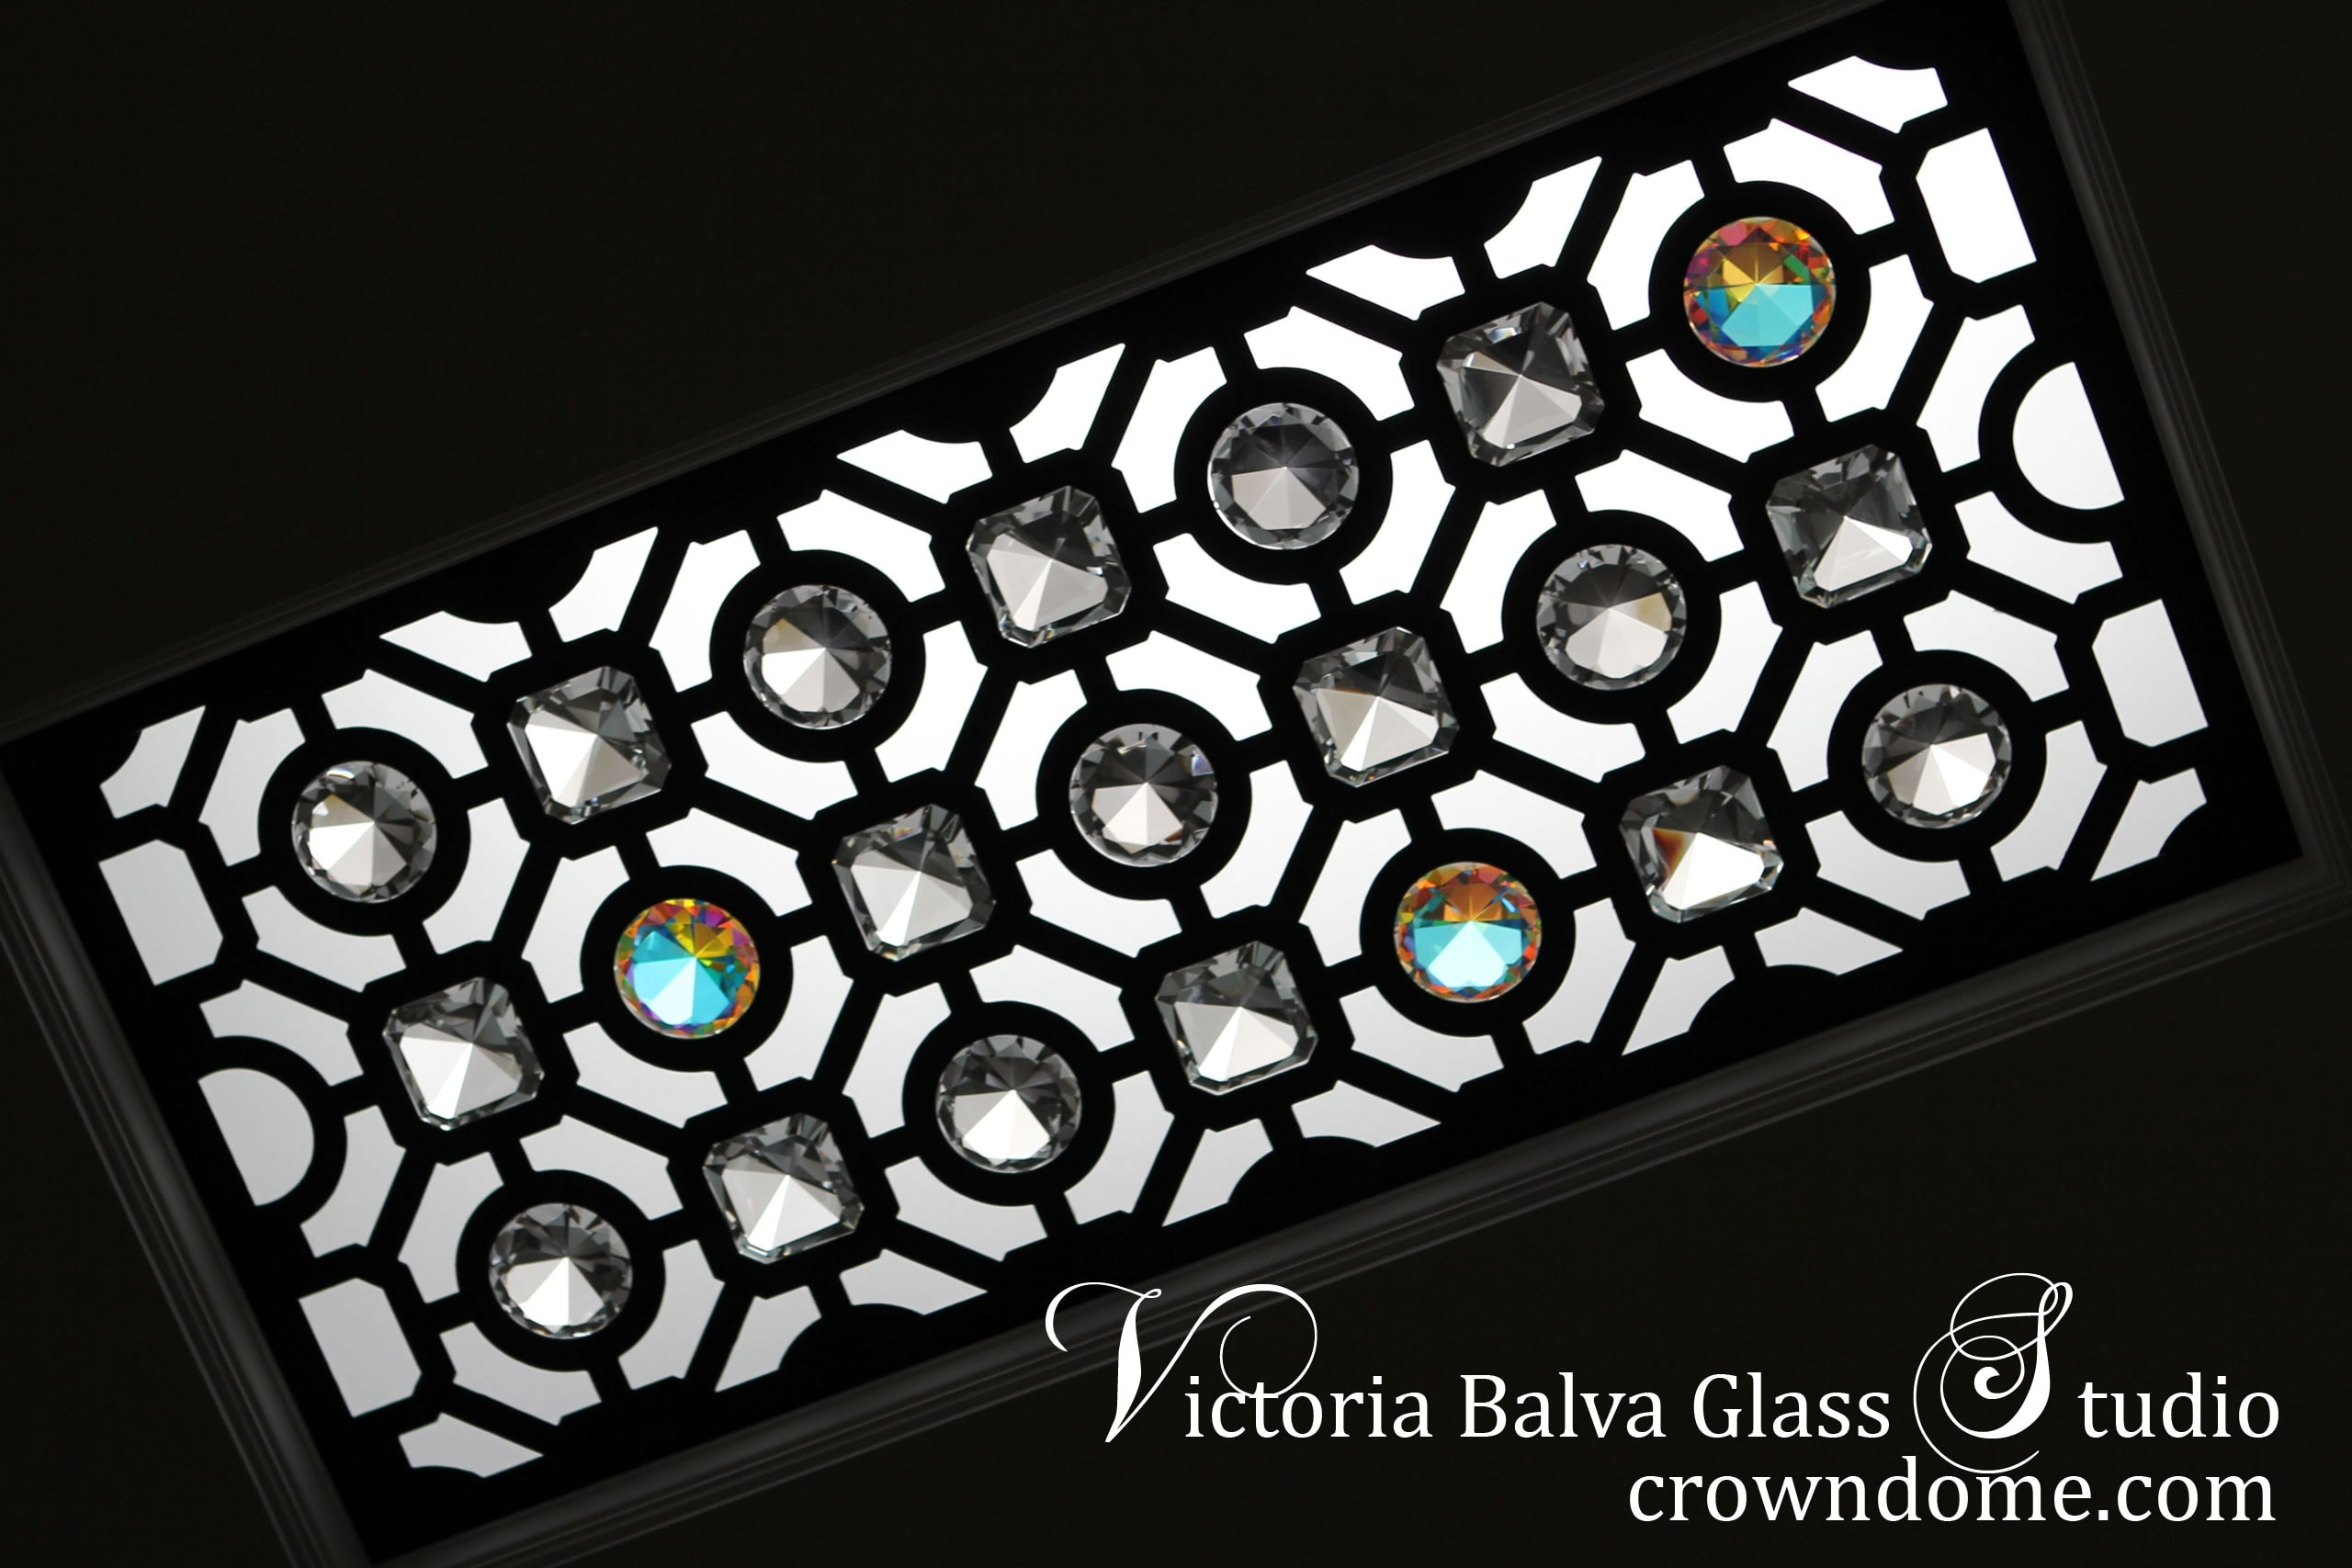 Classically inspired beautiful leaded glass ceiling lay light skylight CNC cut with crystal jewels for a bathroom of a luxury custom built residence